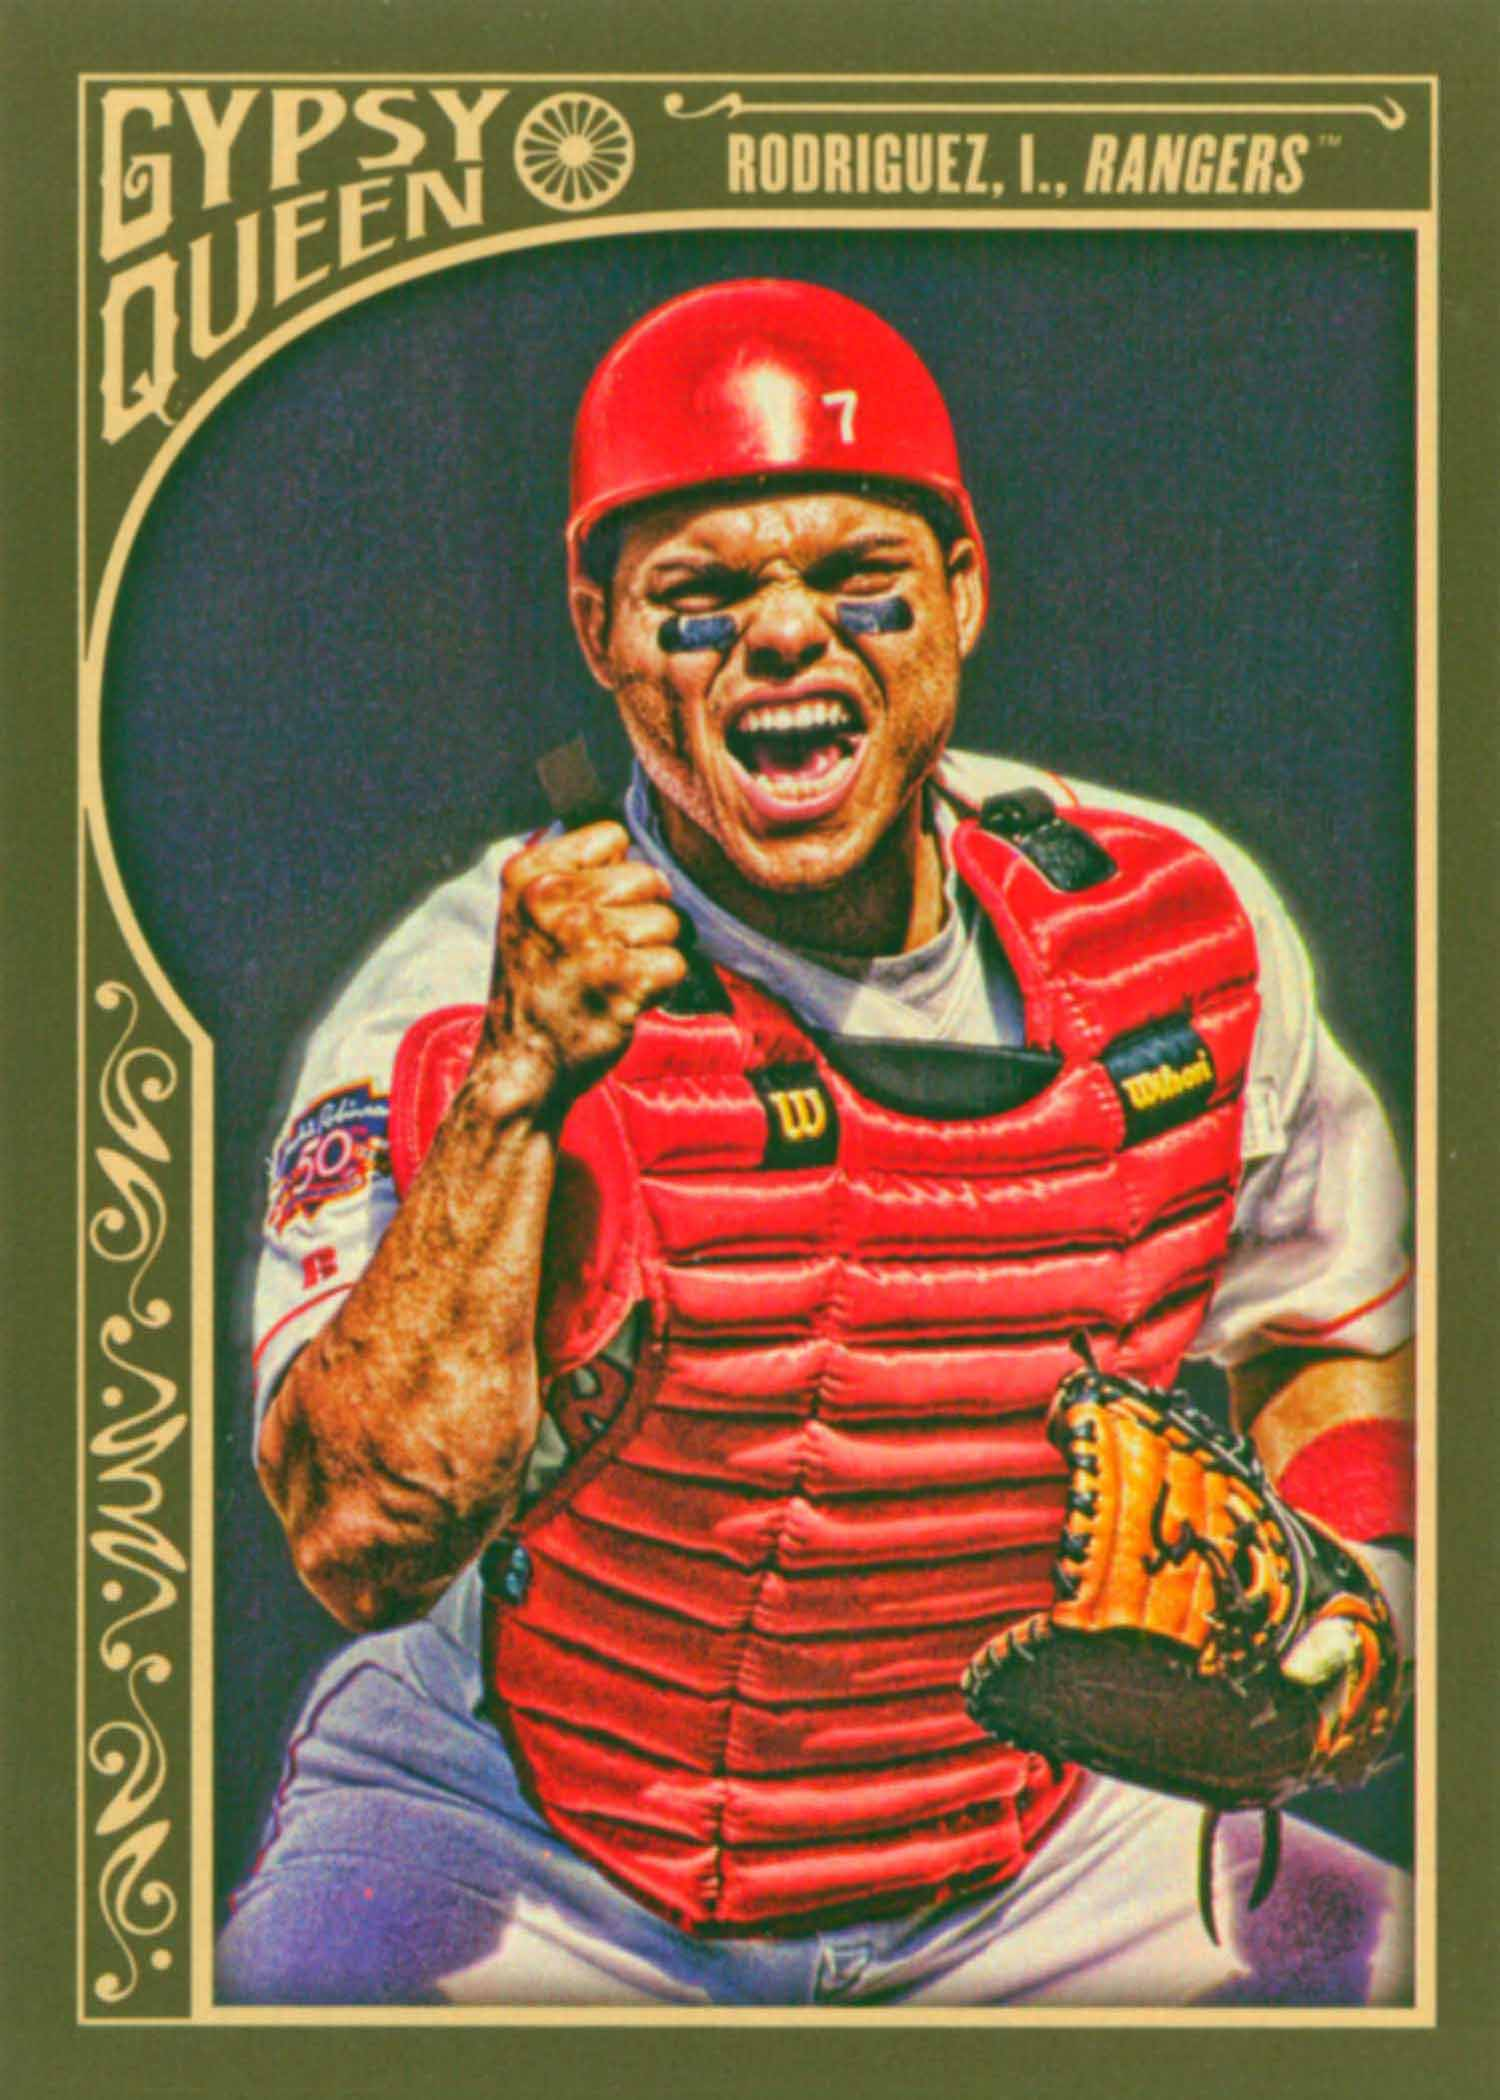 2015 Topps Gypsy Queen